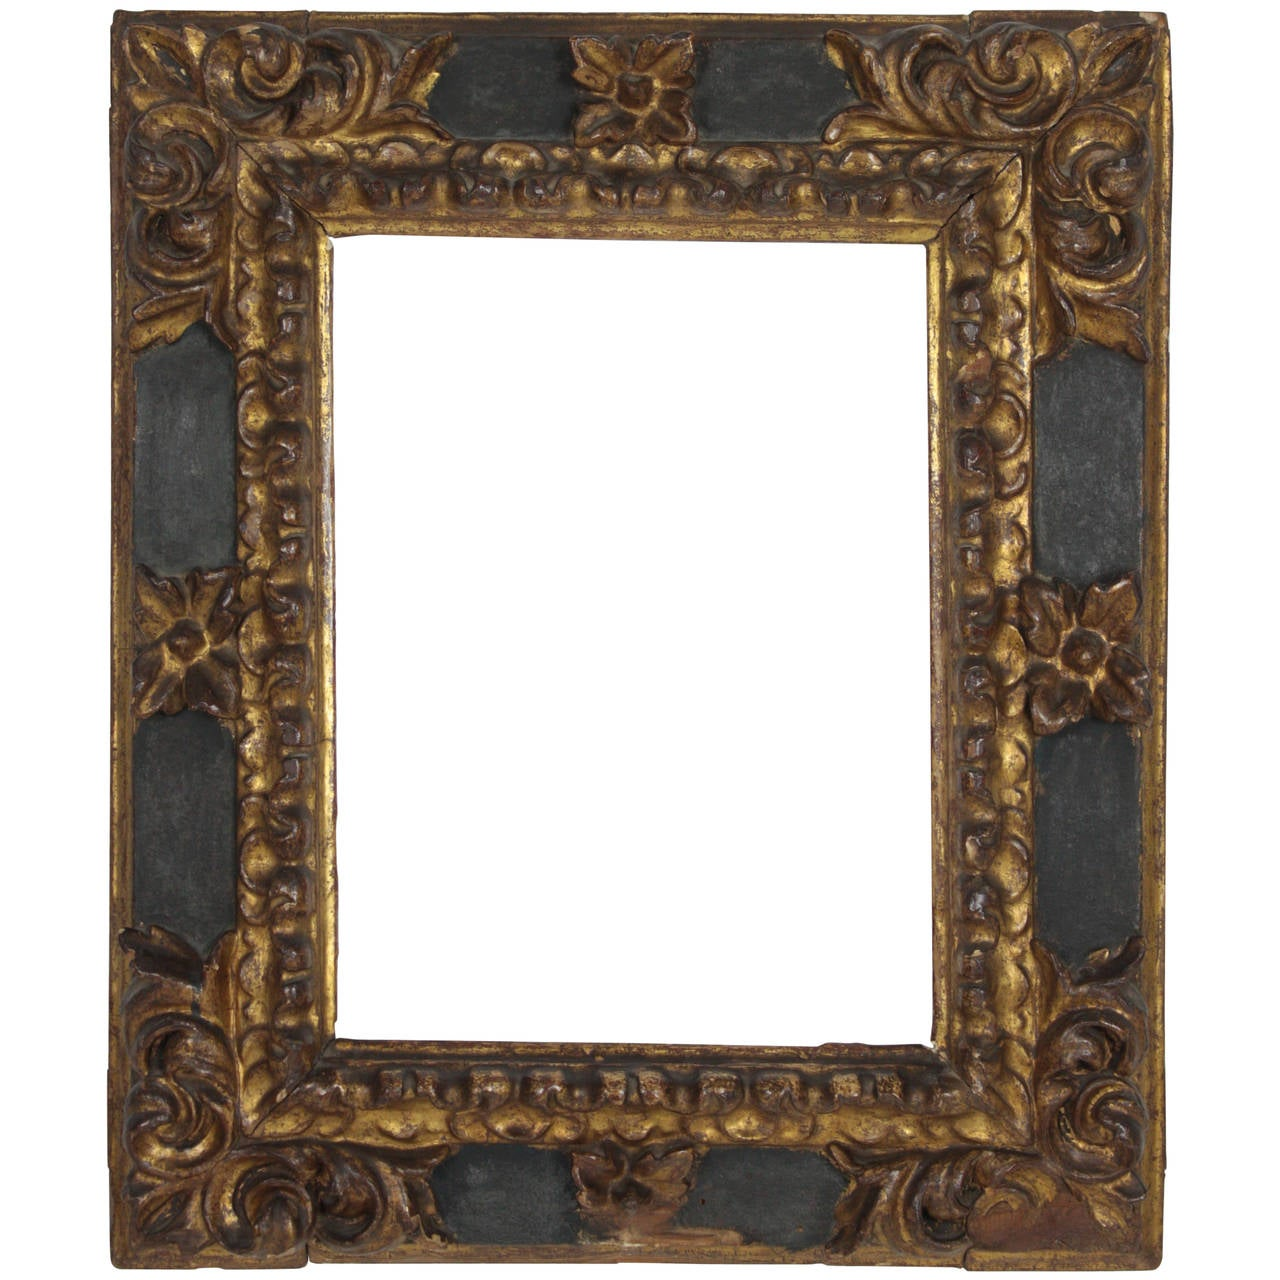 17th century spanish baroque carved wood gold leaf frame for sale 17th century spanish baroque carved wood gold leaf frame for sale jeuxipadfo Image collections